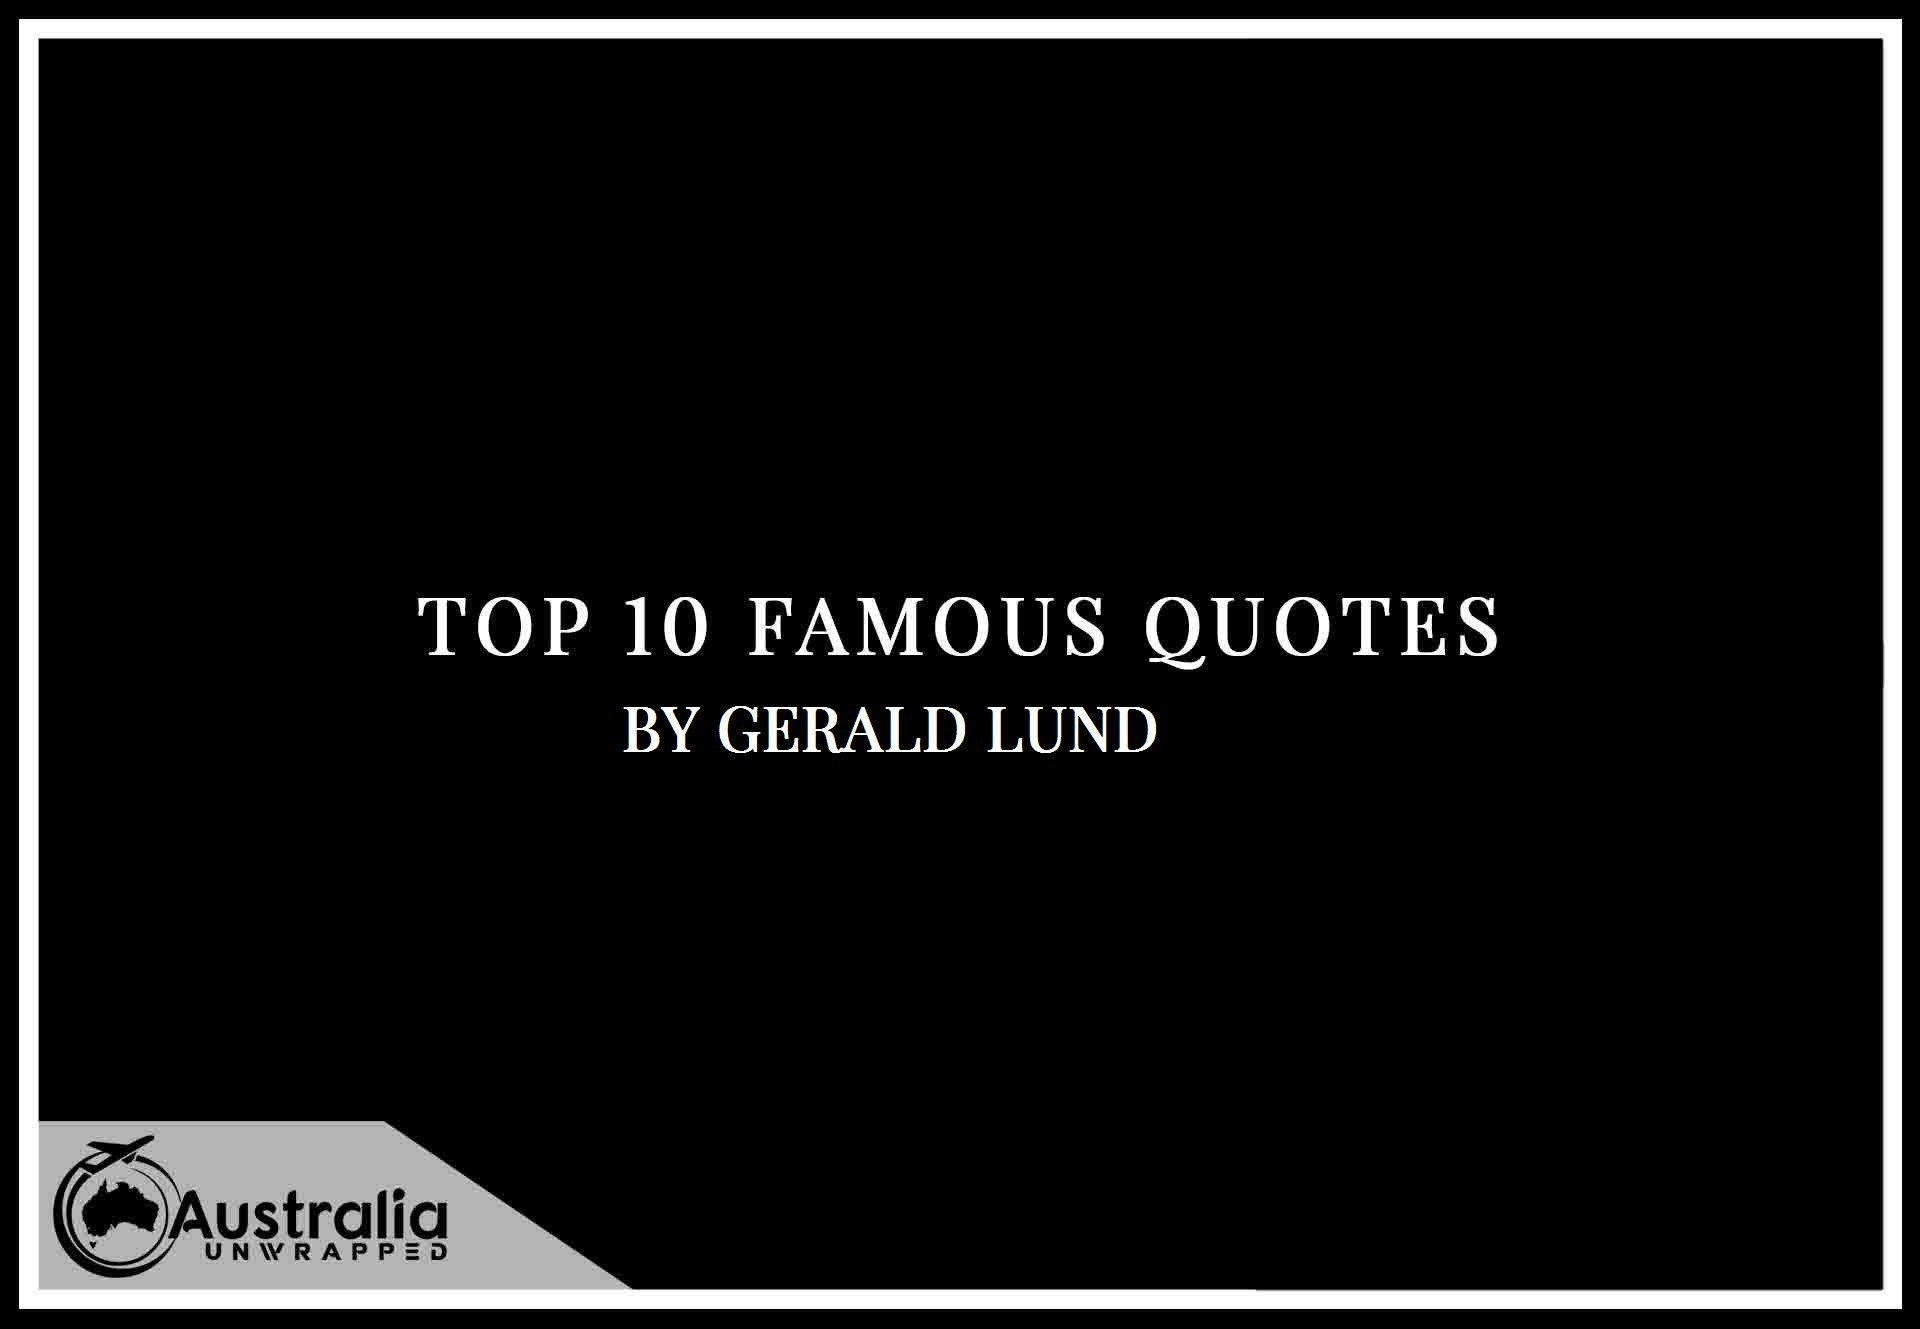 Gerald Lund's Top 10 Popular and Famous Quotes